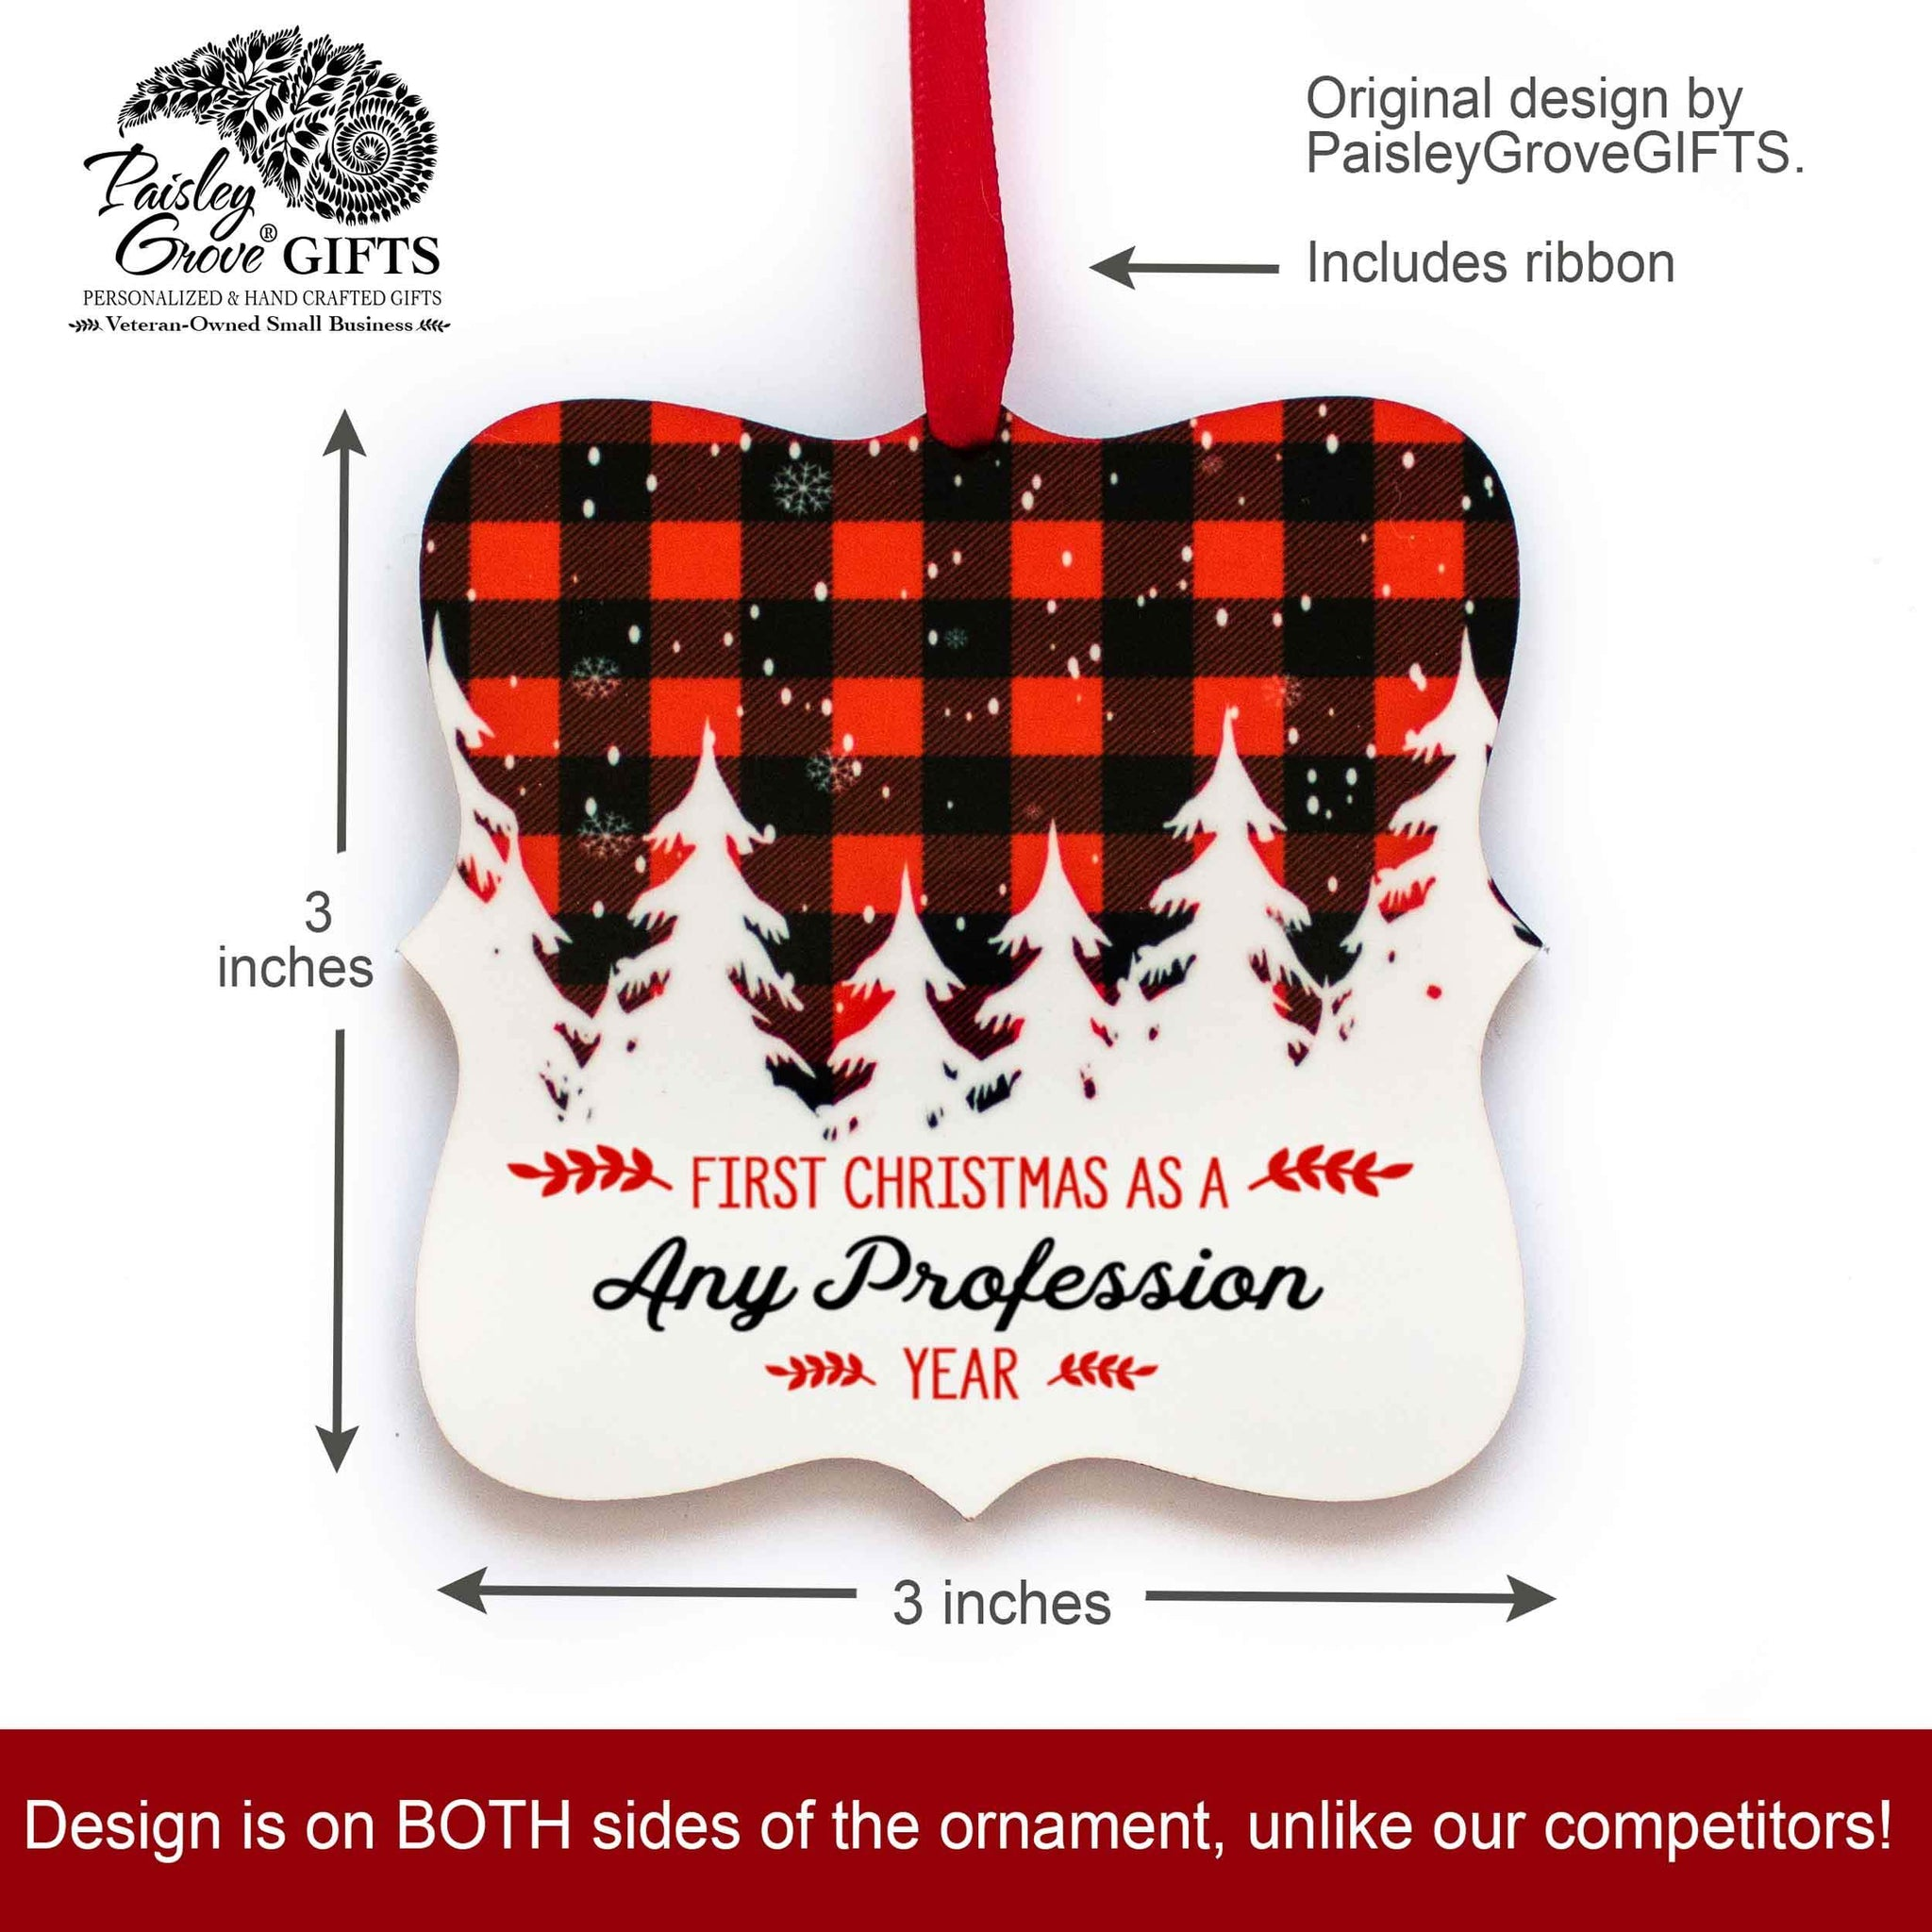 CopyrightPaisleyGroveGIFTS S502k Our 1st Christmas Ornament with any custom message, 3 inches x 3 inches, with ribbon